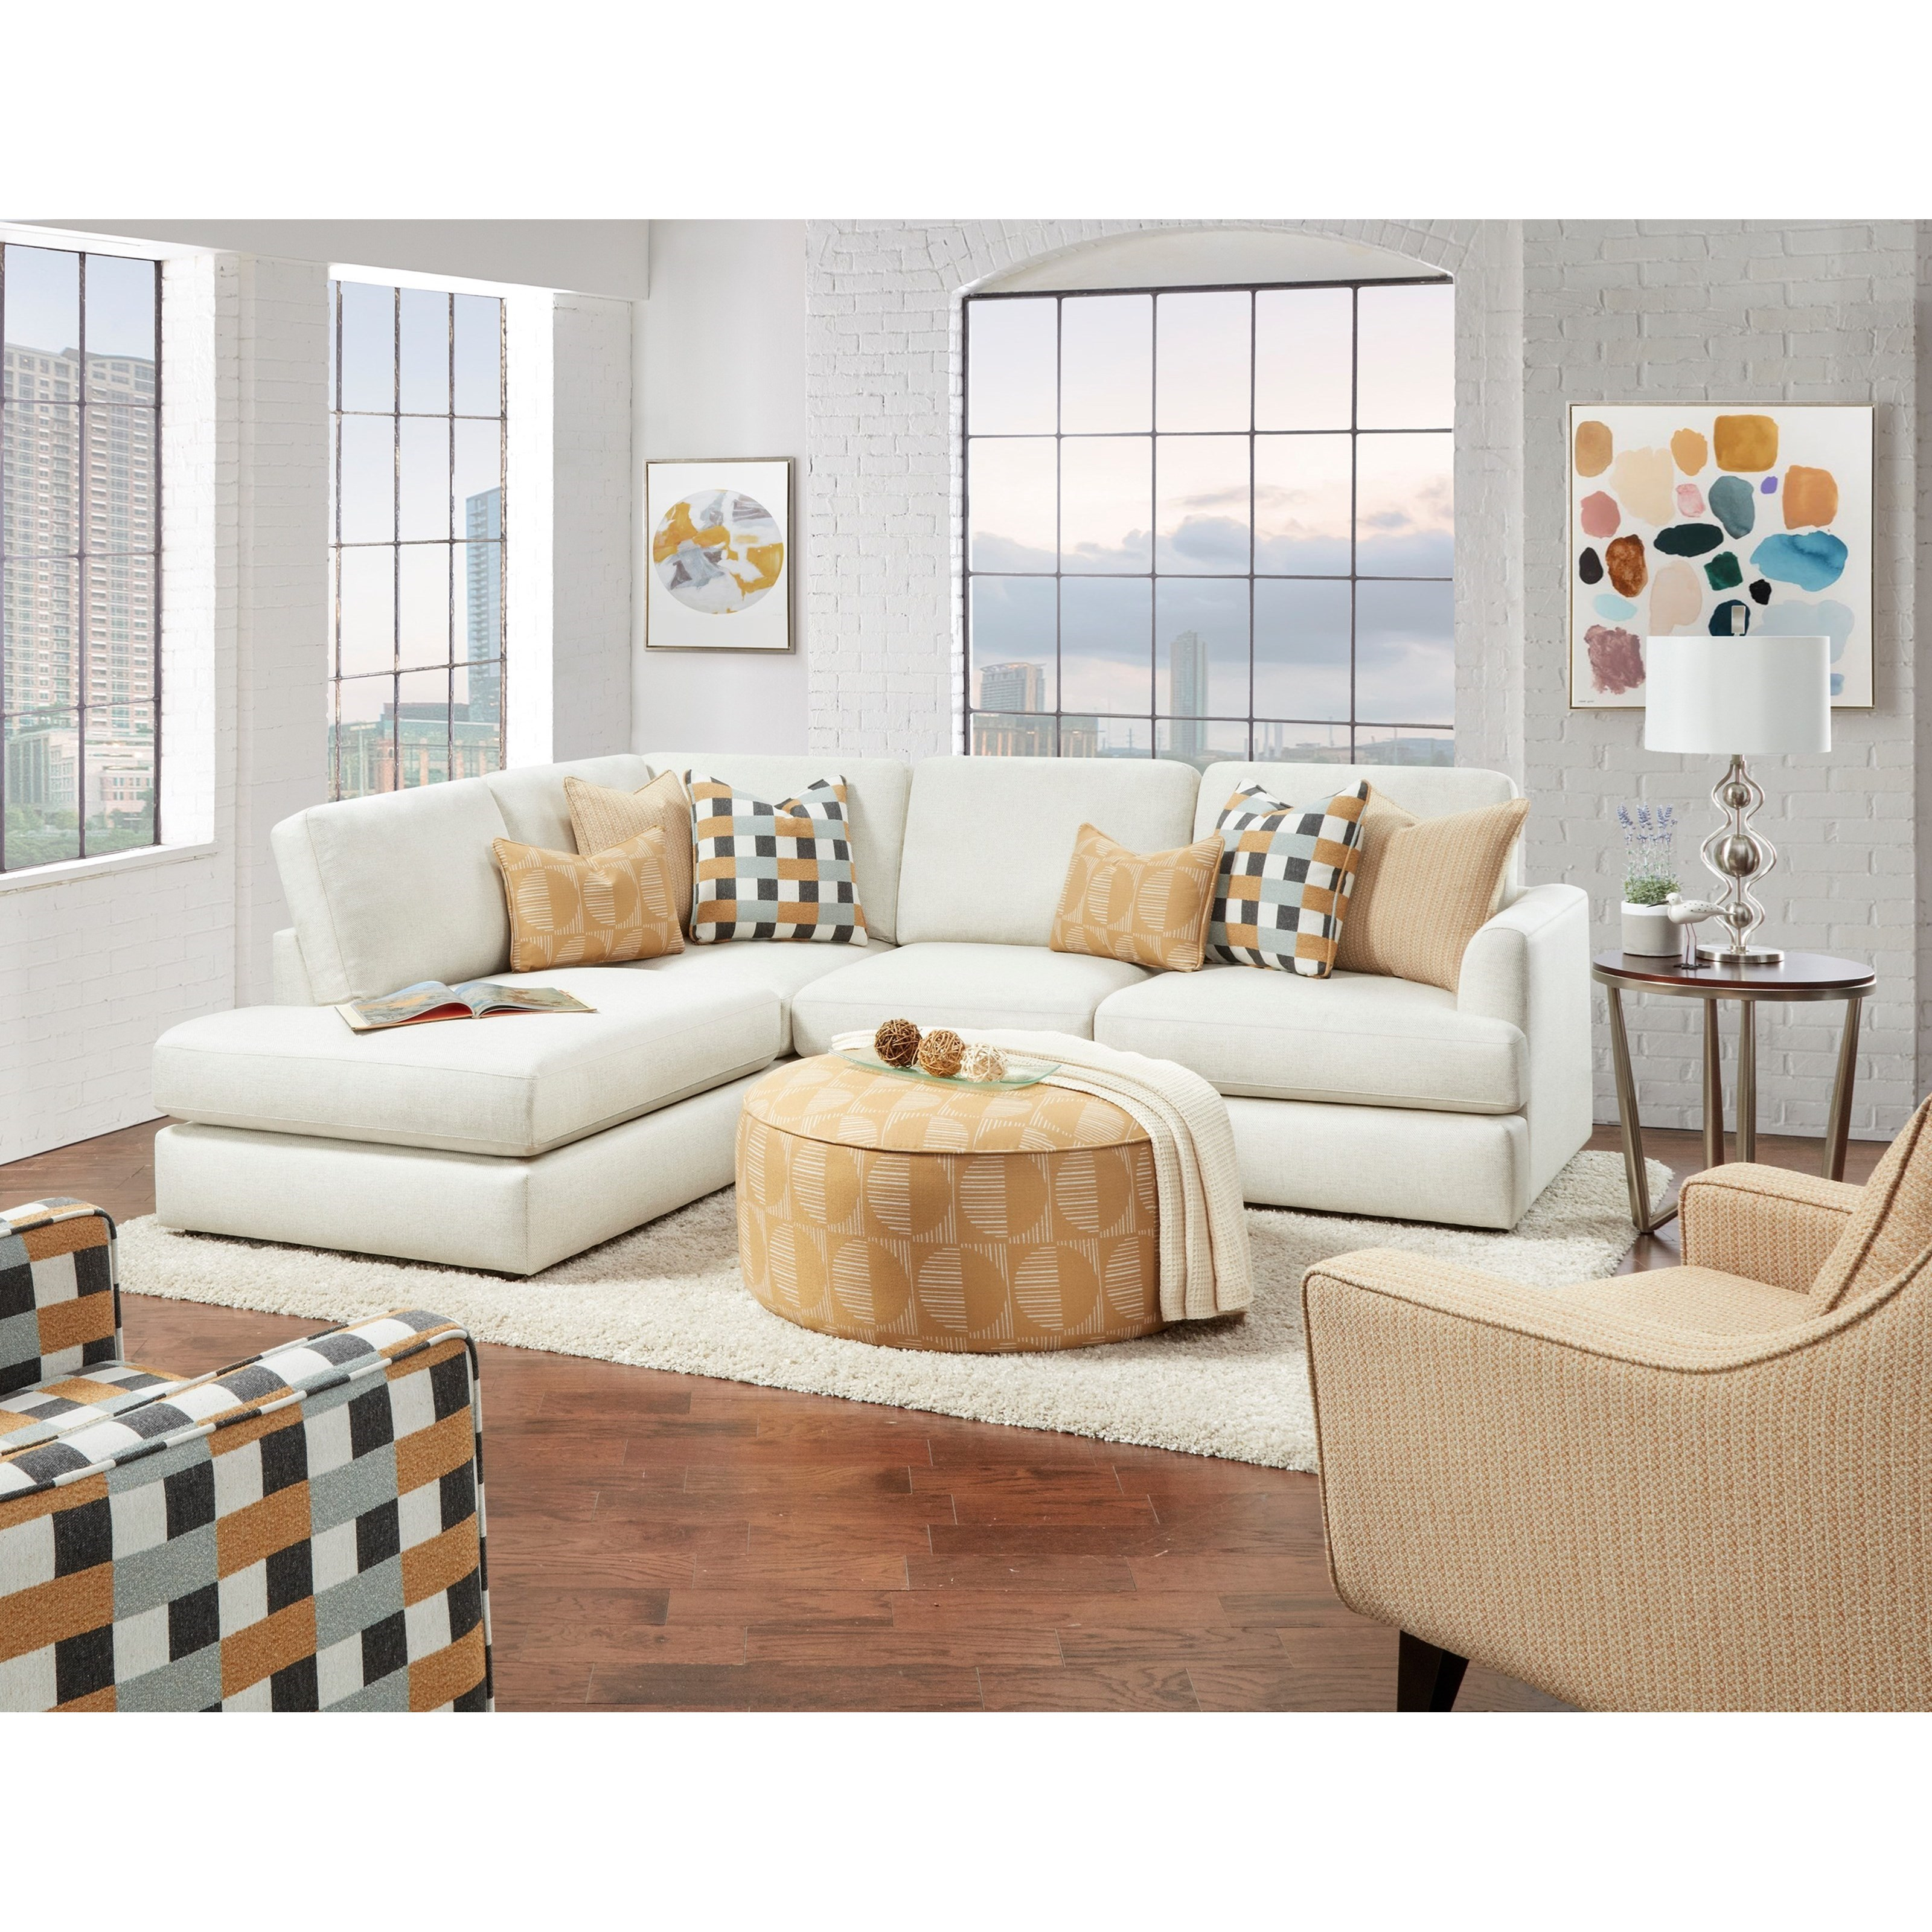 23-00 Living Room Group by Fusion Furniture at Wilcox Furniture